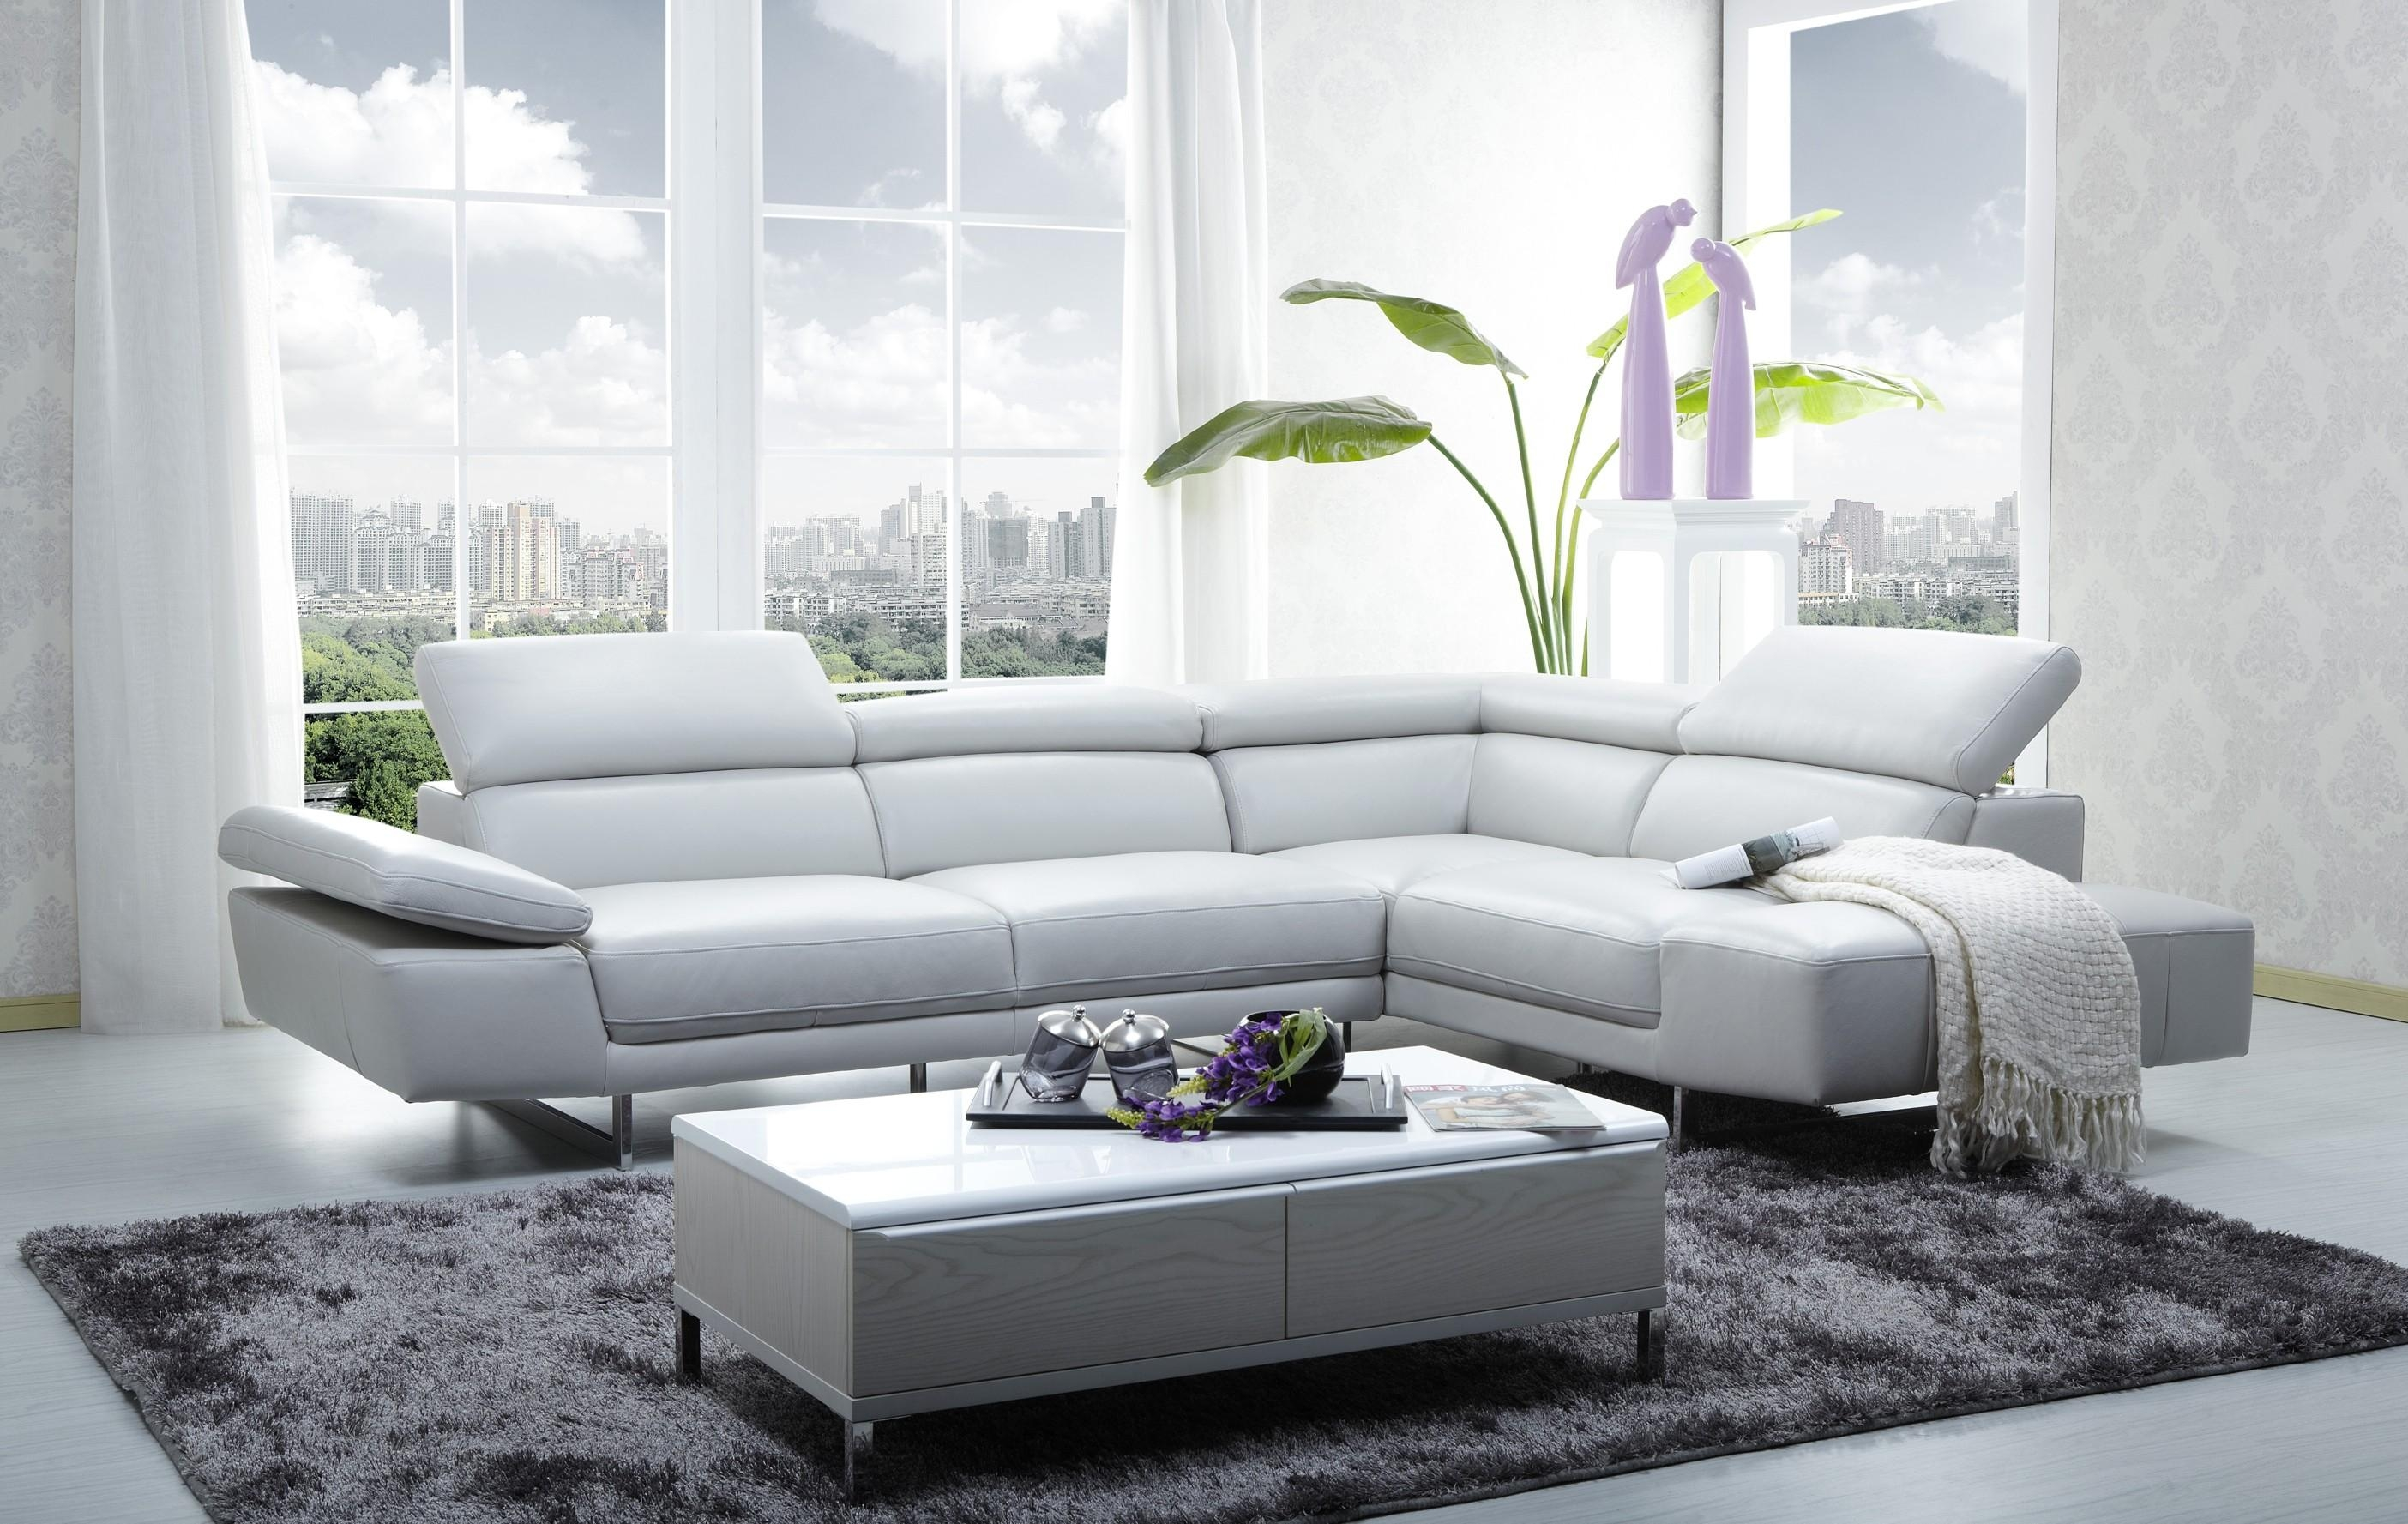 Small Apartment Design Interior With White Sectional Sofa Beds Within White Sectional Sofa For Sale (View 10 of 21)